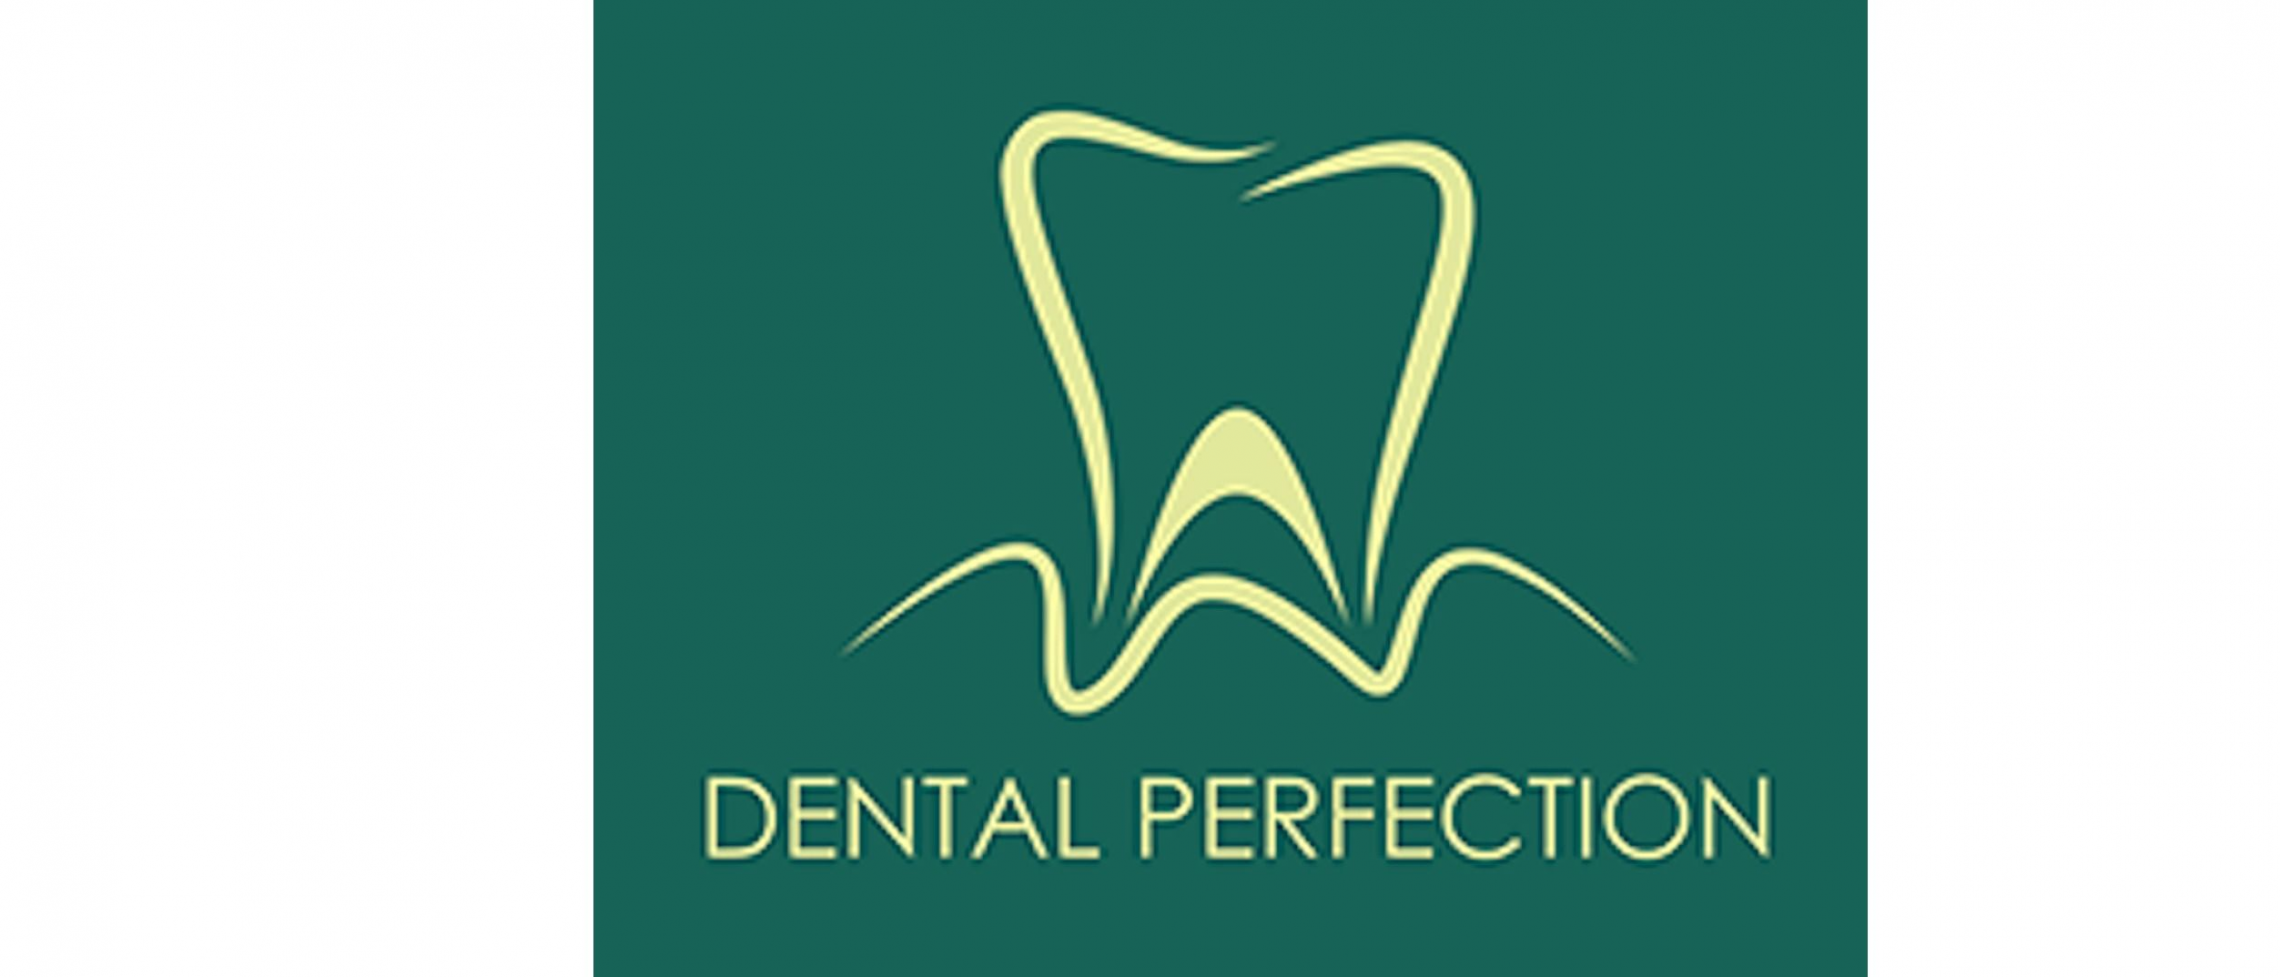 Dental Perfection - The MiSmile Network